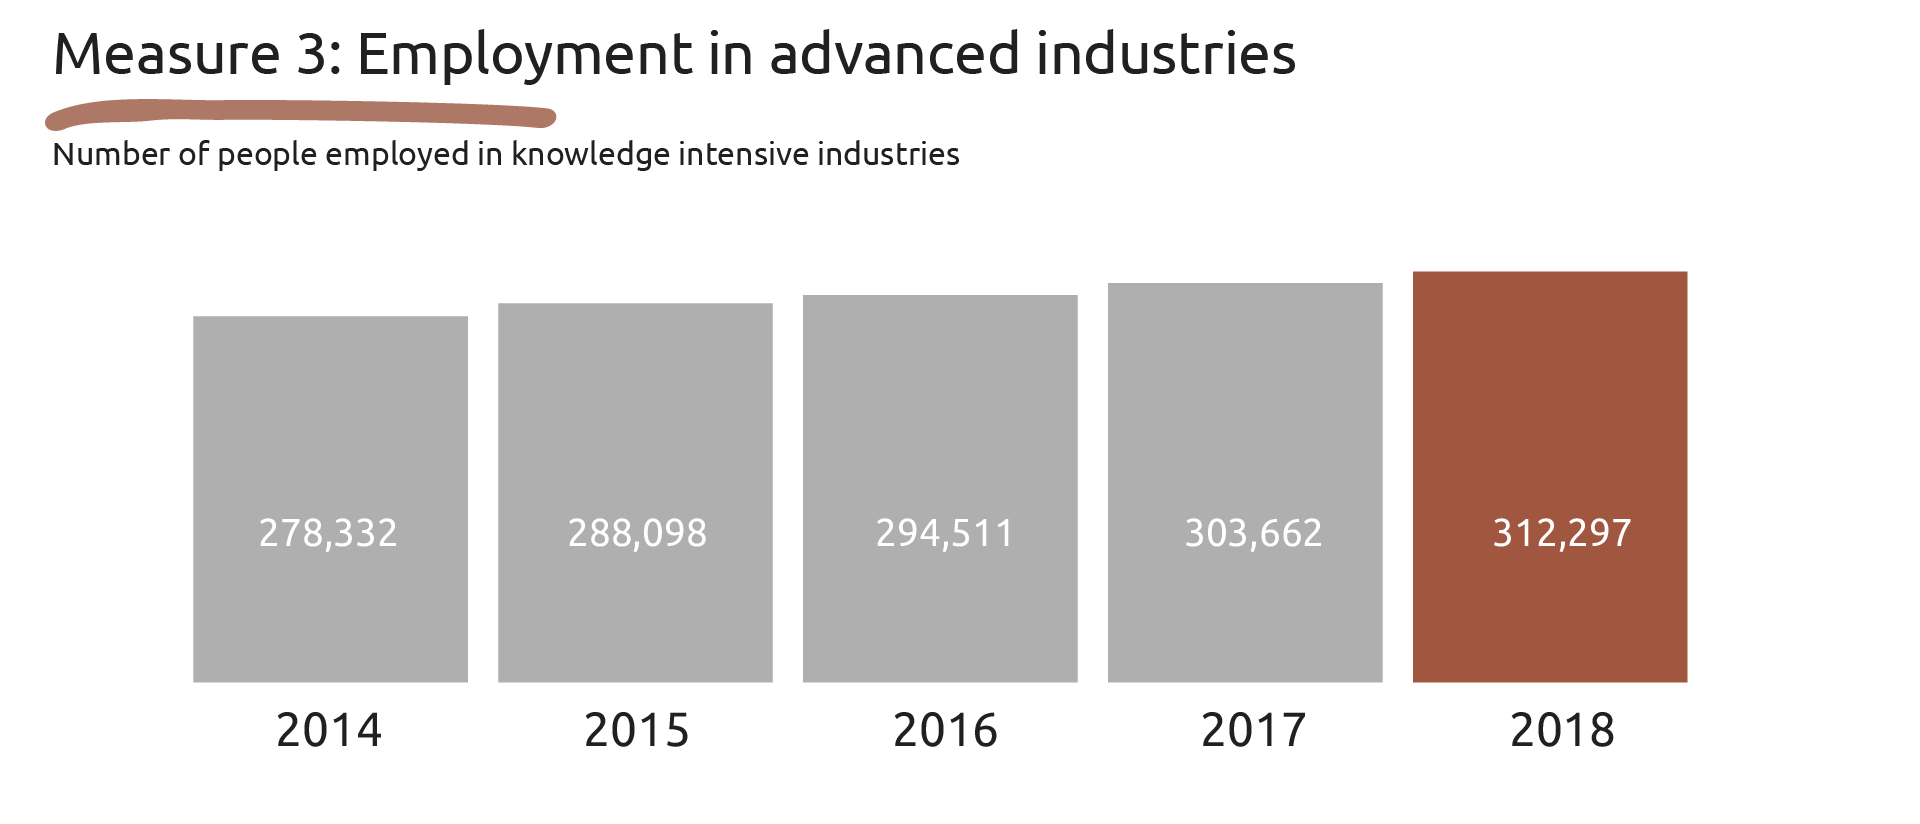 Image showing the data for Measure 3: Employment in advanced industries.